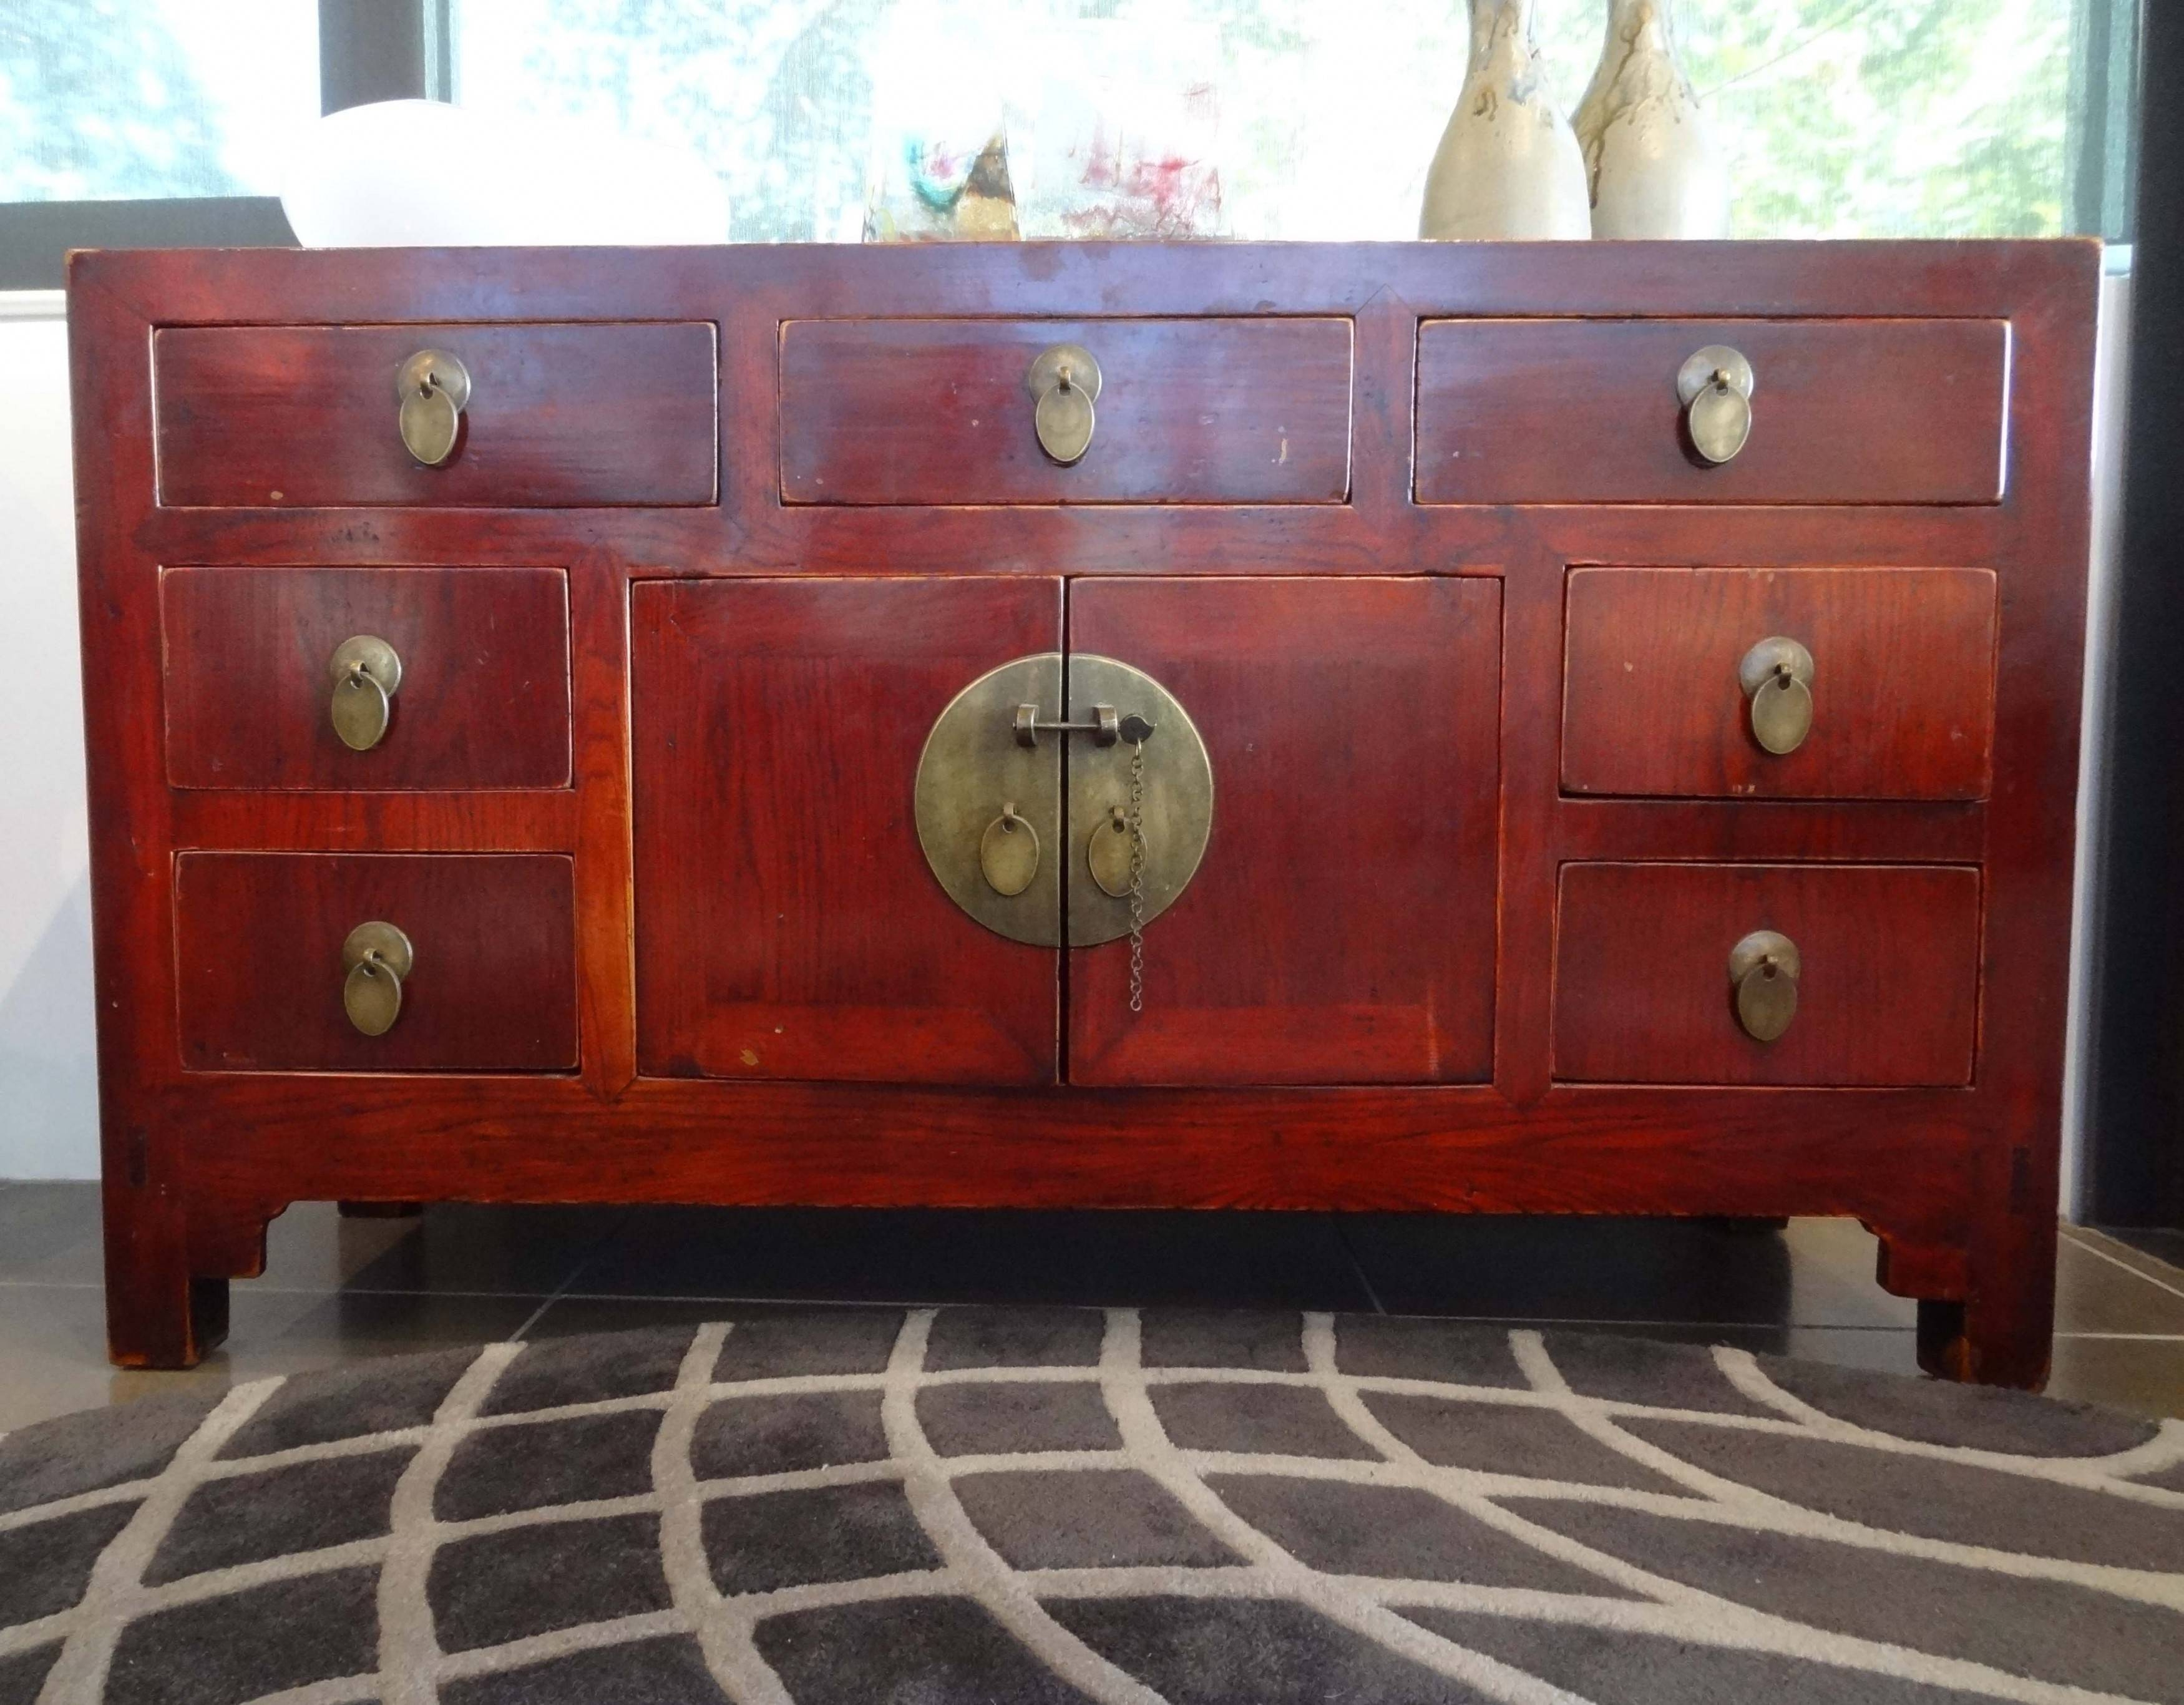 Antique Sideboards | Gallery Categories | Aptos Cruz For Chinese Sideboards (View 6 of 30)